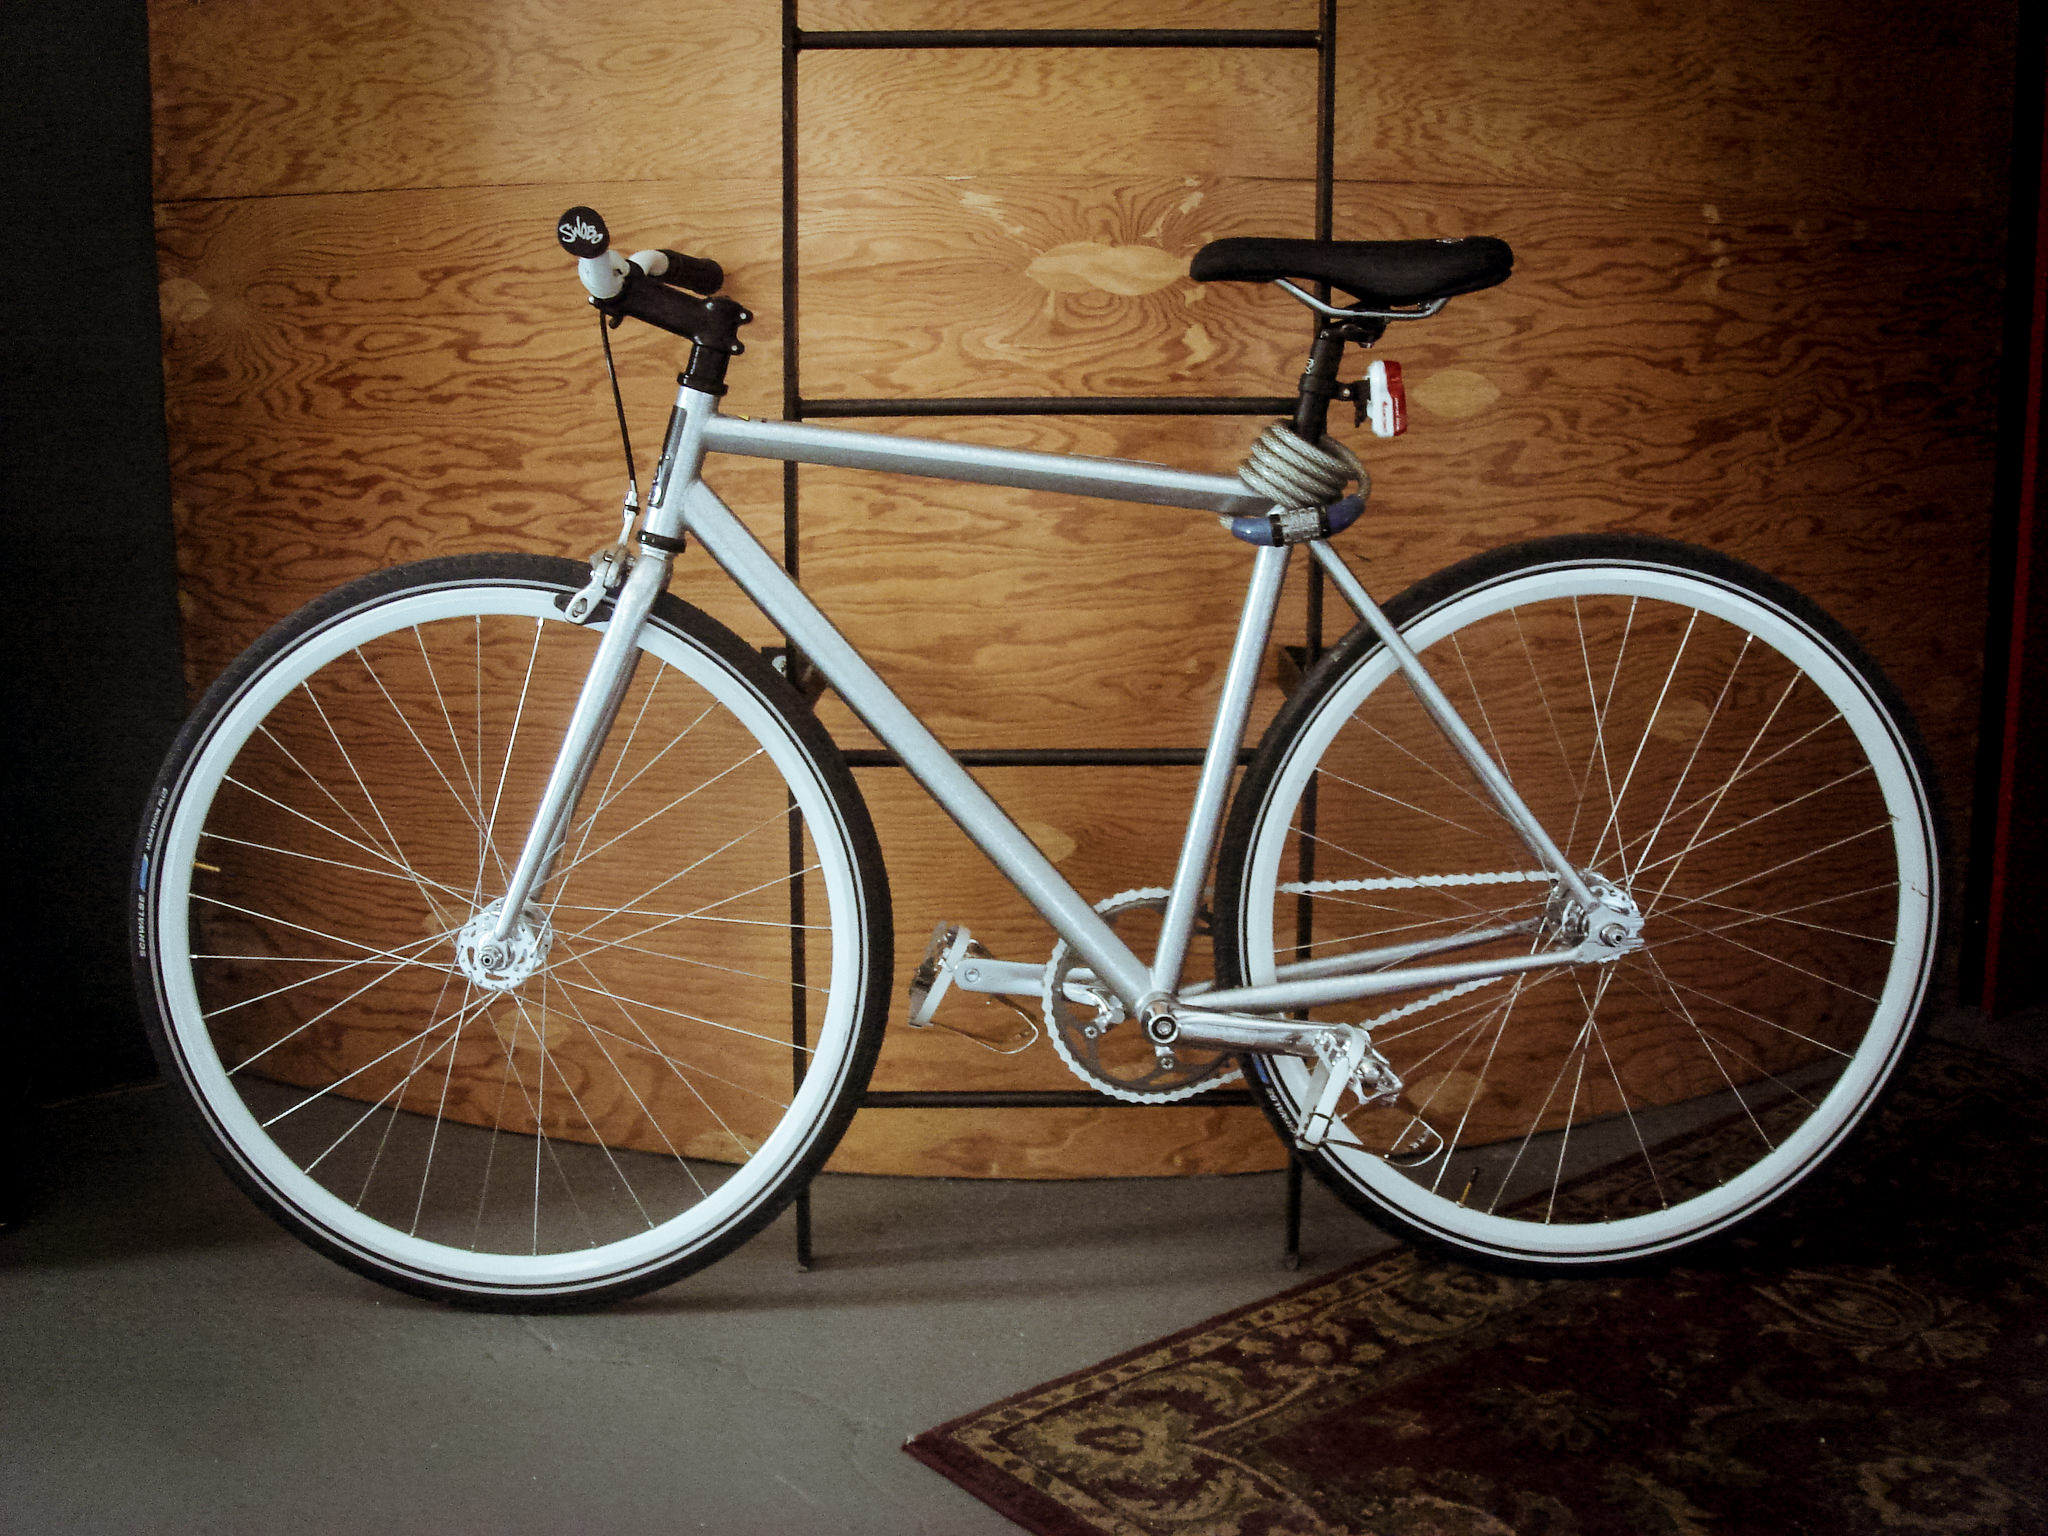 My trusty Swobo, single speed 'Sanchez' in Silver, free wheel with front and rear brakes.